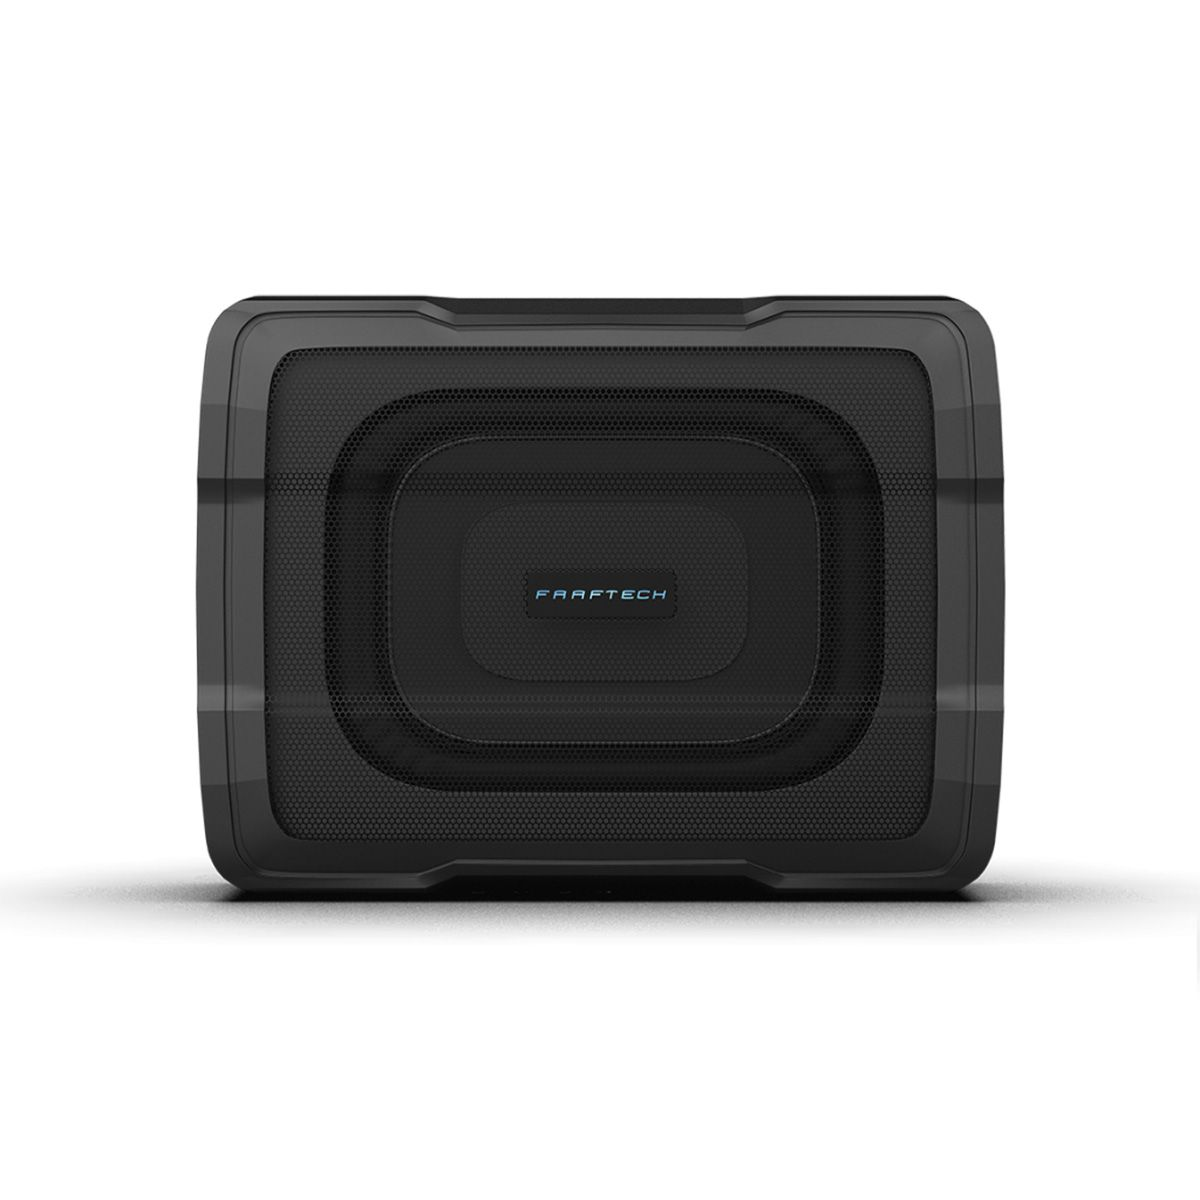 Subwoofer Ativo Plug and Play 100W RMS Toyota FT-SW68 TY Faaftech